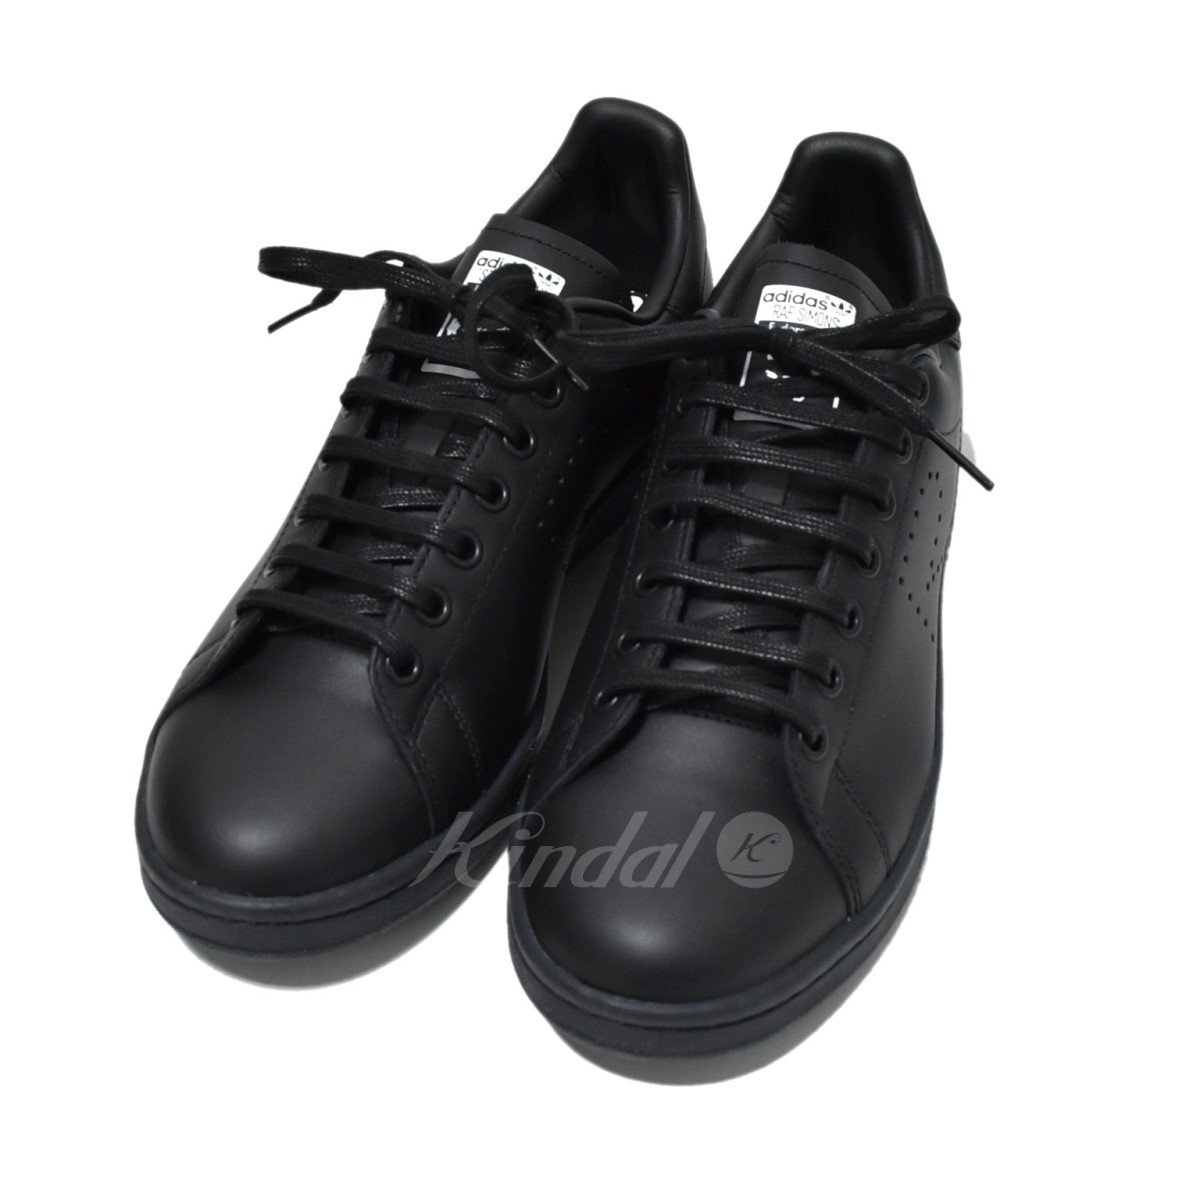 separation shoes 3957b 58a83 adidas by RAF SIMONS RS STAN SMITH sneakers black size: 25. 5 (Adidas by  rough Simmons)